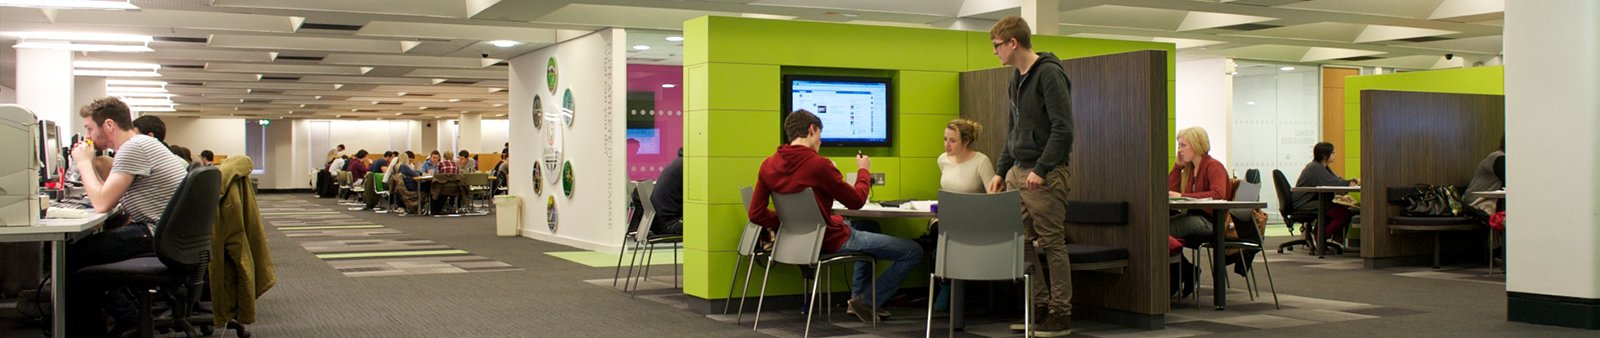 Library tours | University of Strathclyde